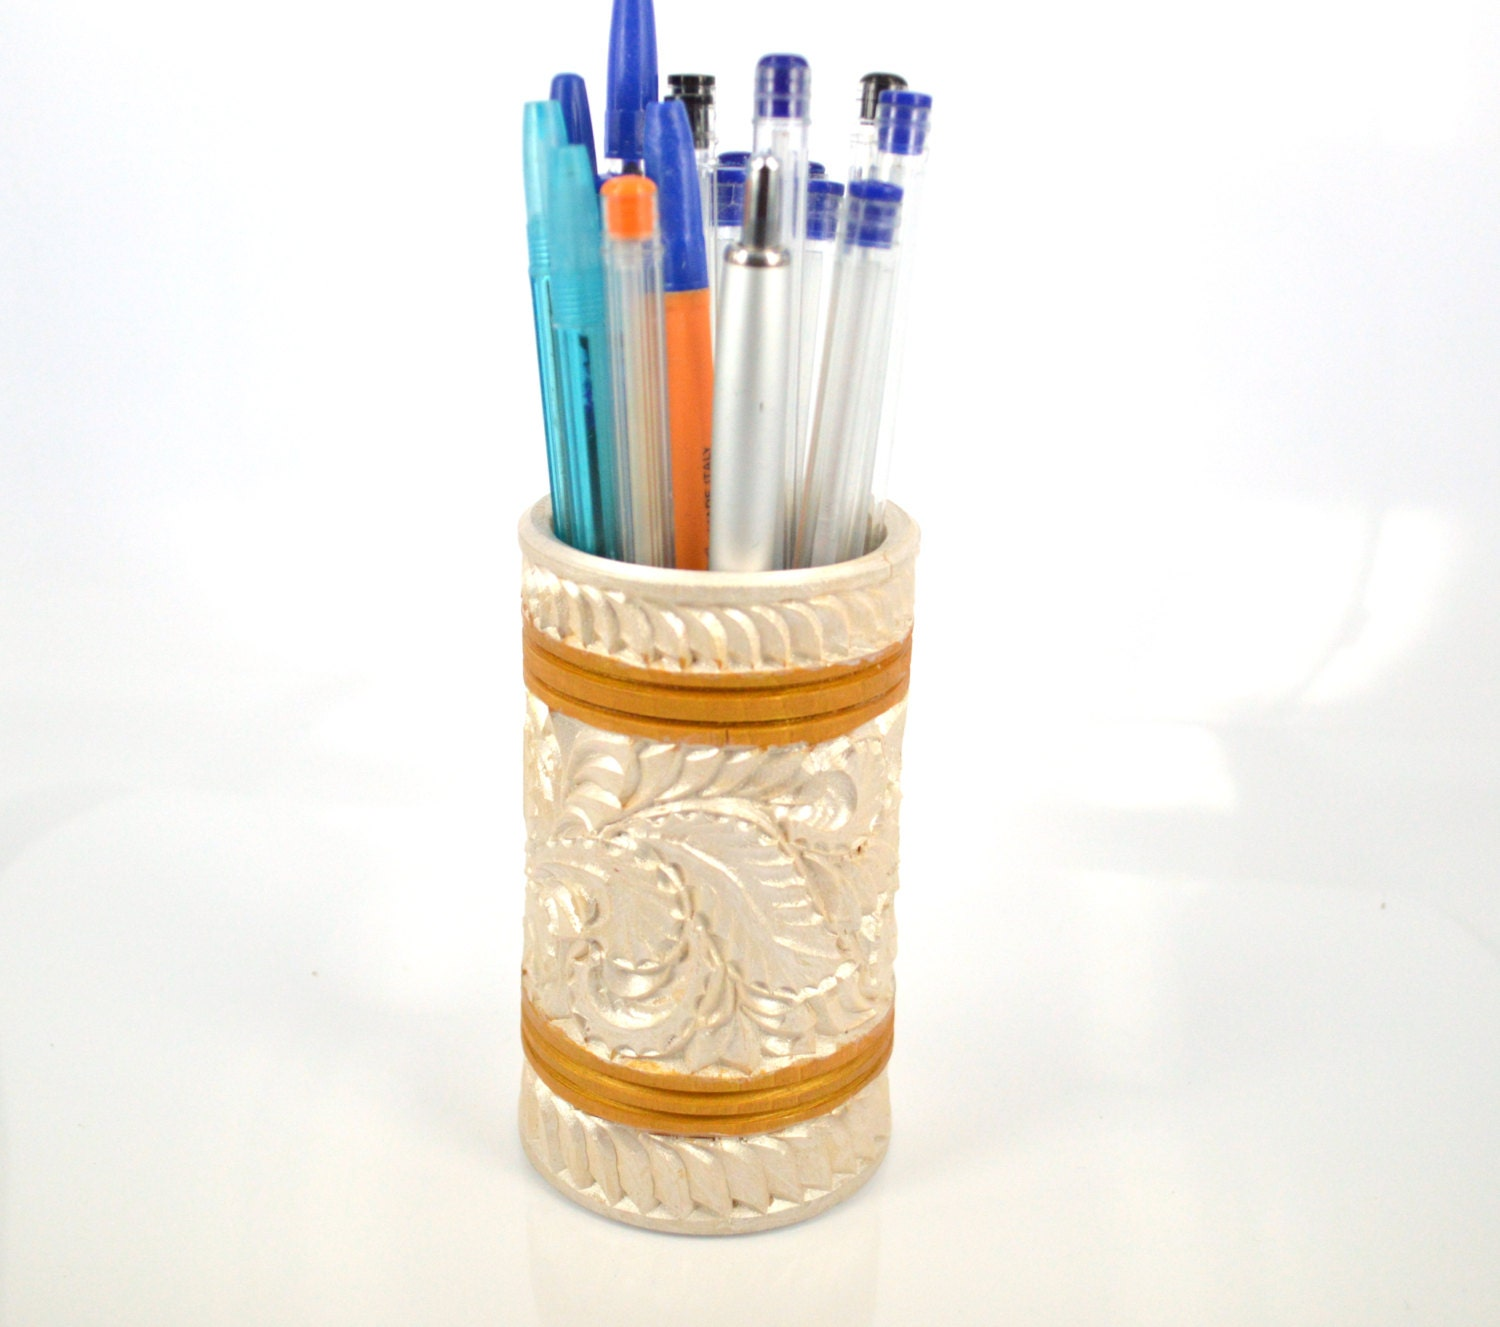 Wood carving carved wooden pencil and pen holder wiht a